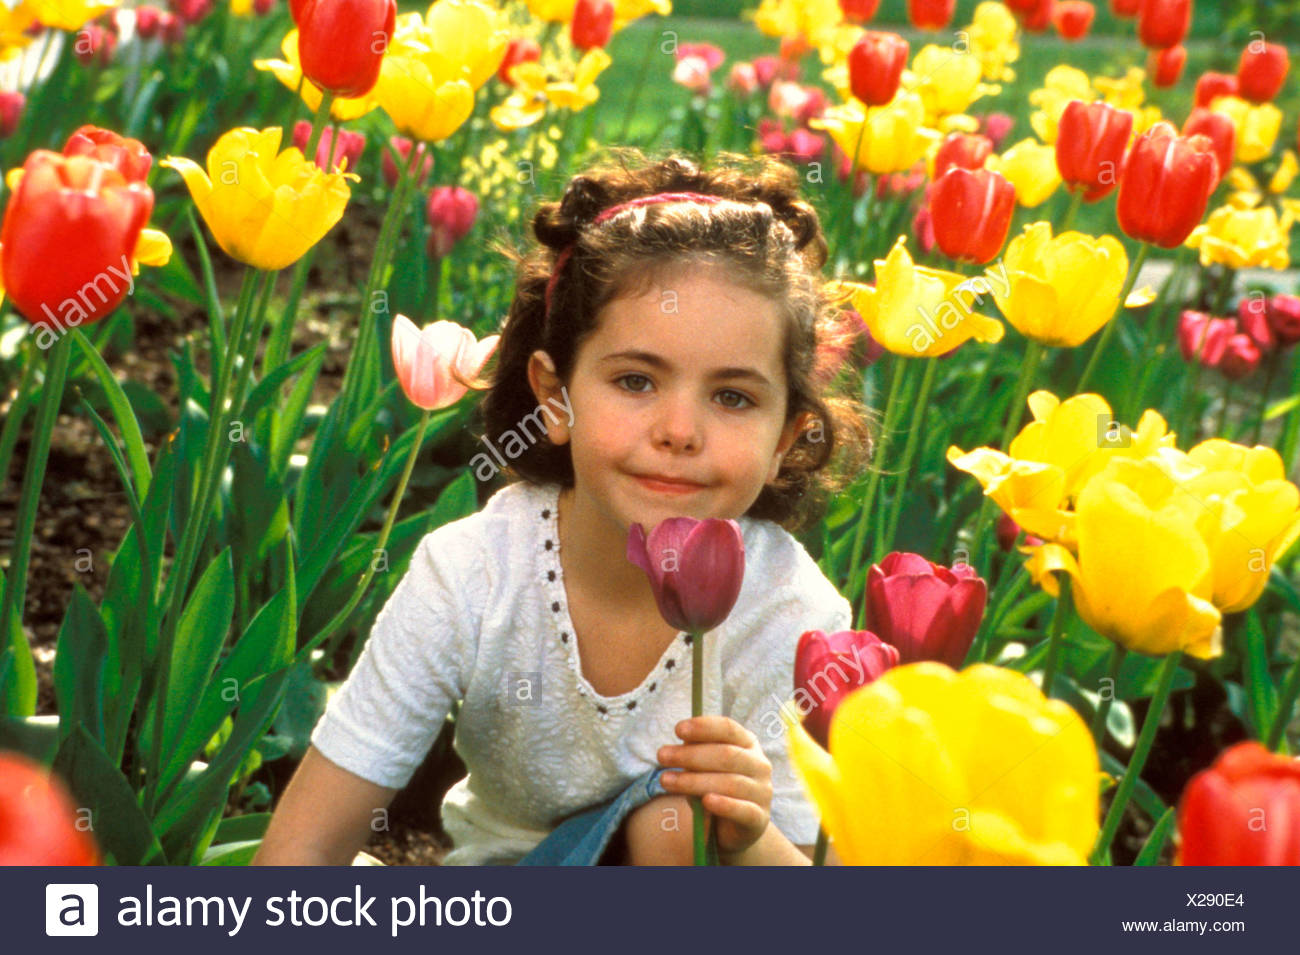 Girl with tulip MR842 - Stock Image